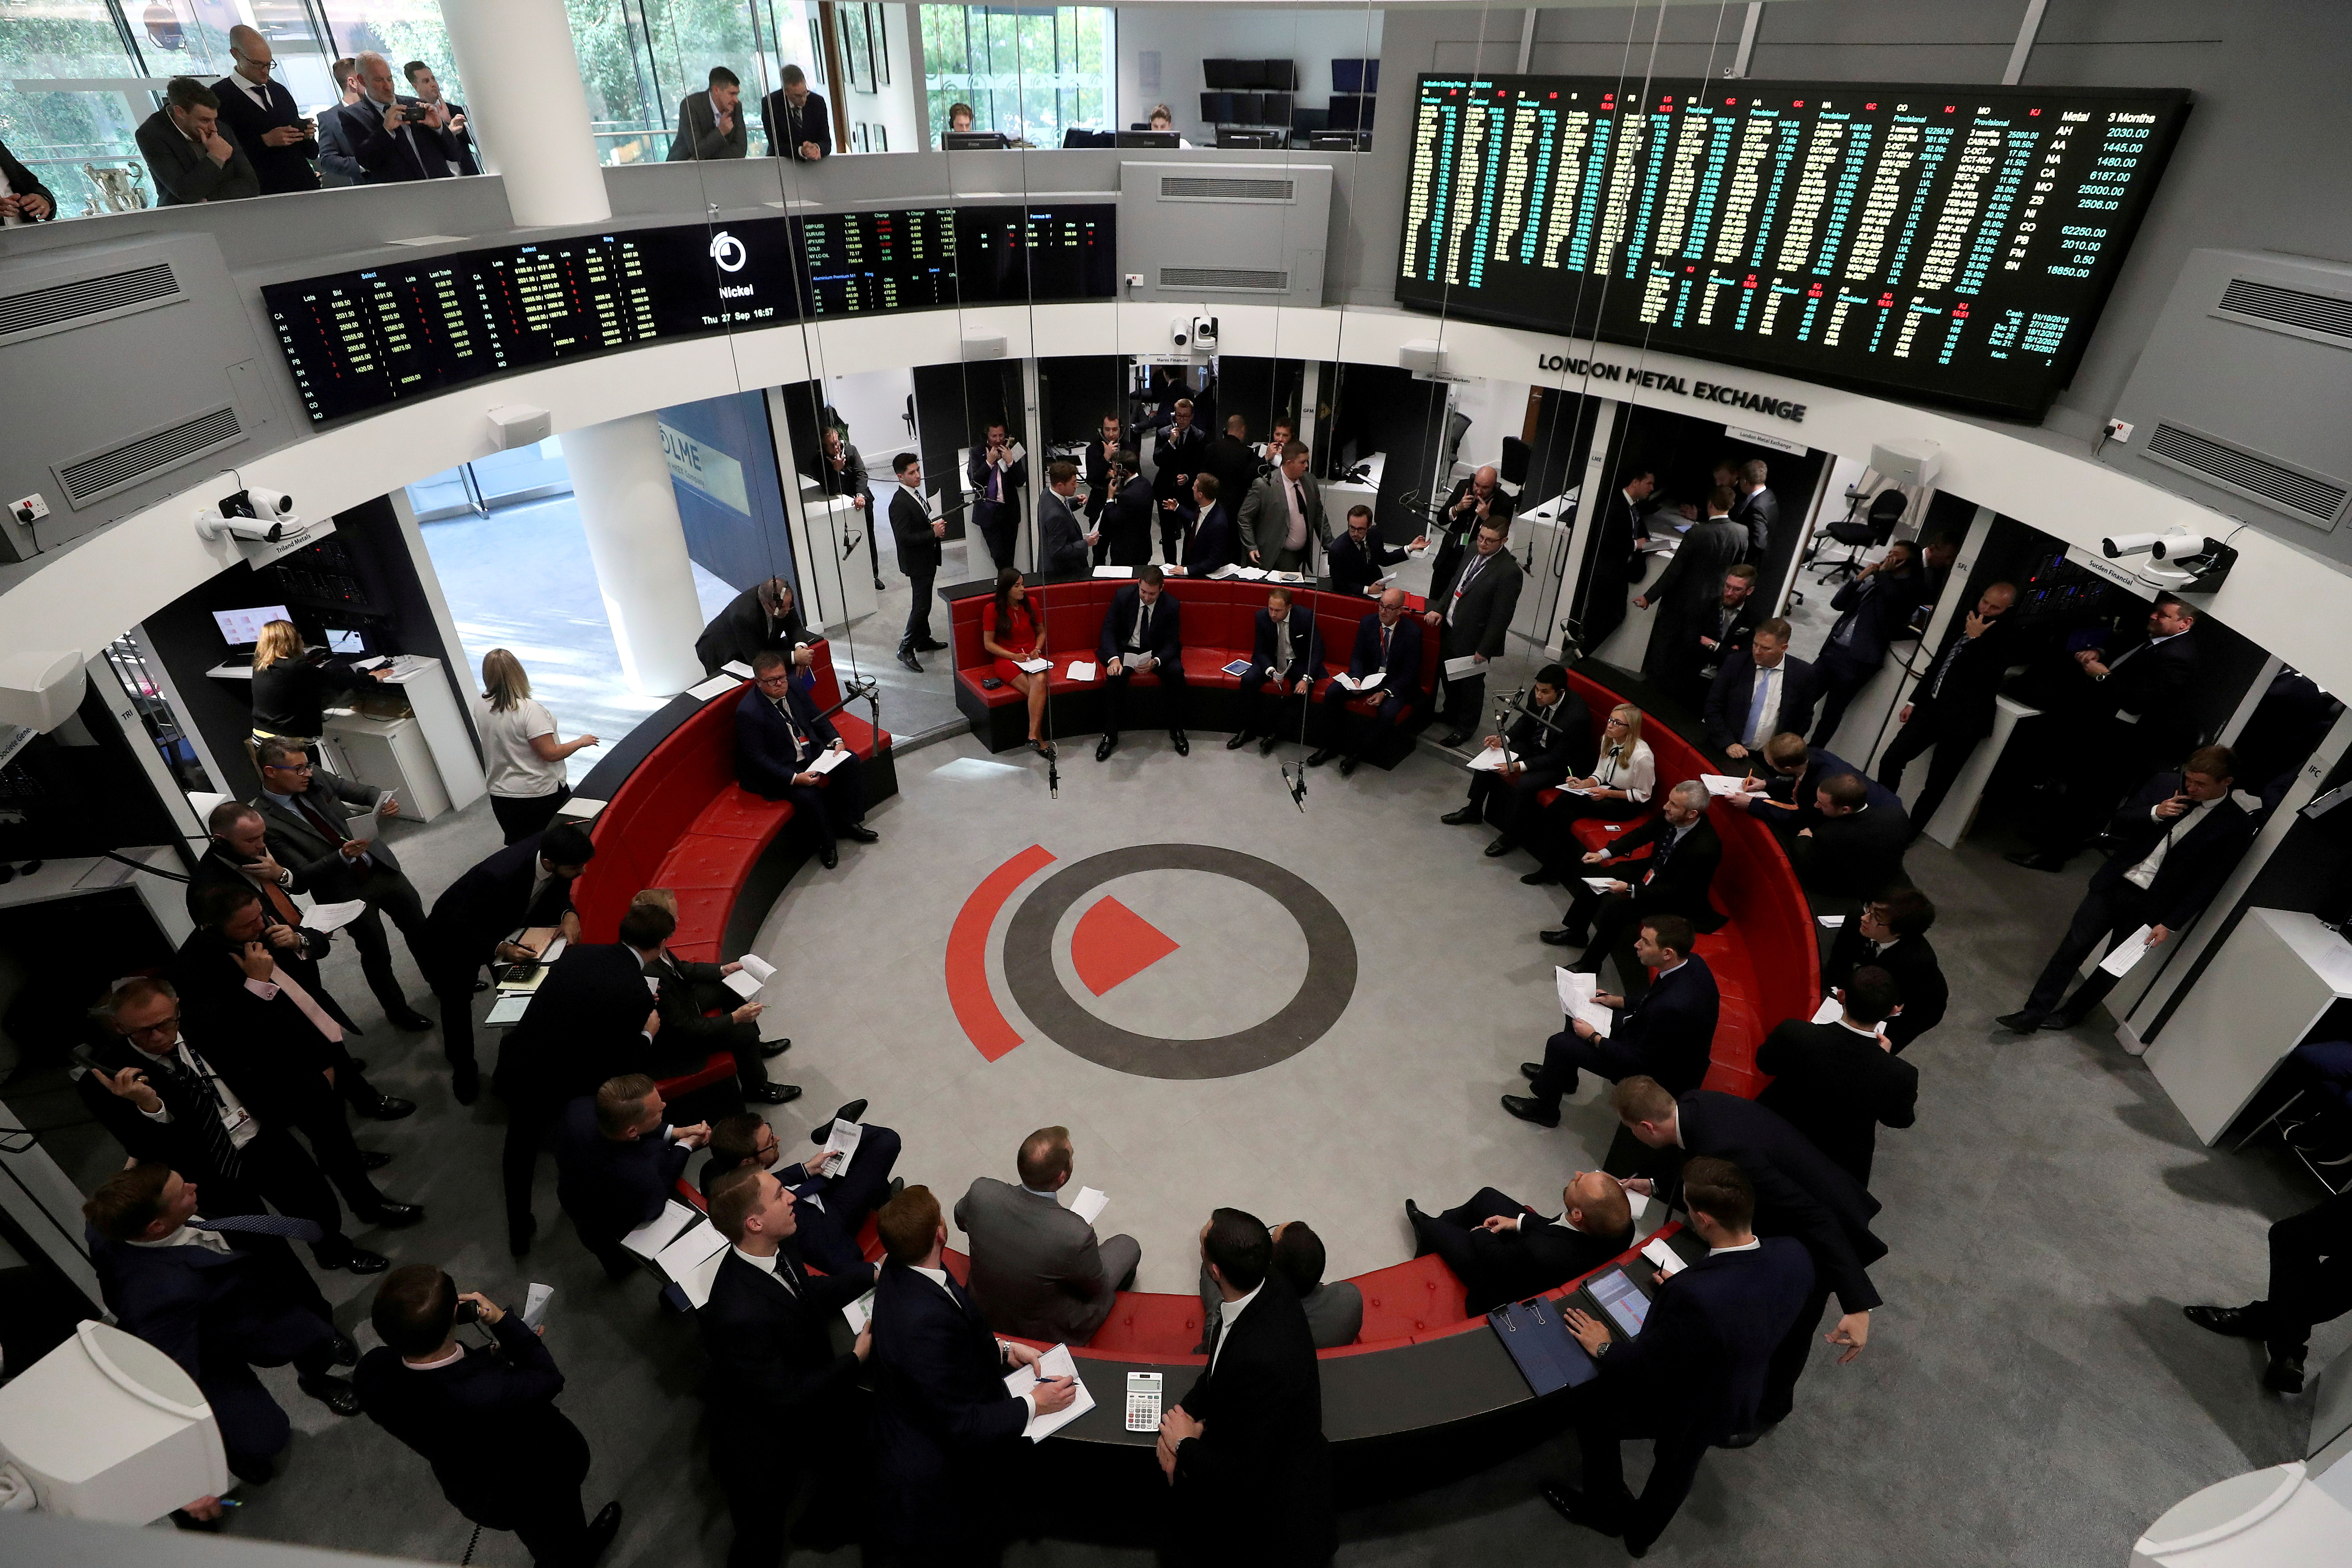 Traders work on the floor of the London Metal Exchange in London, Britain, September 27, 2018. REUTERS/Simon Dawson/File Photo